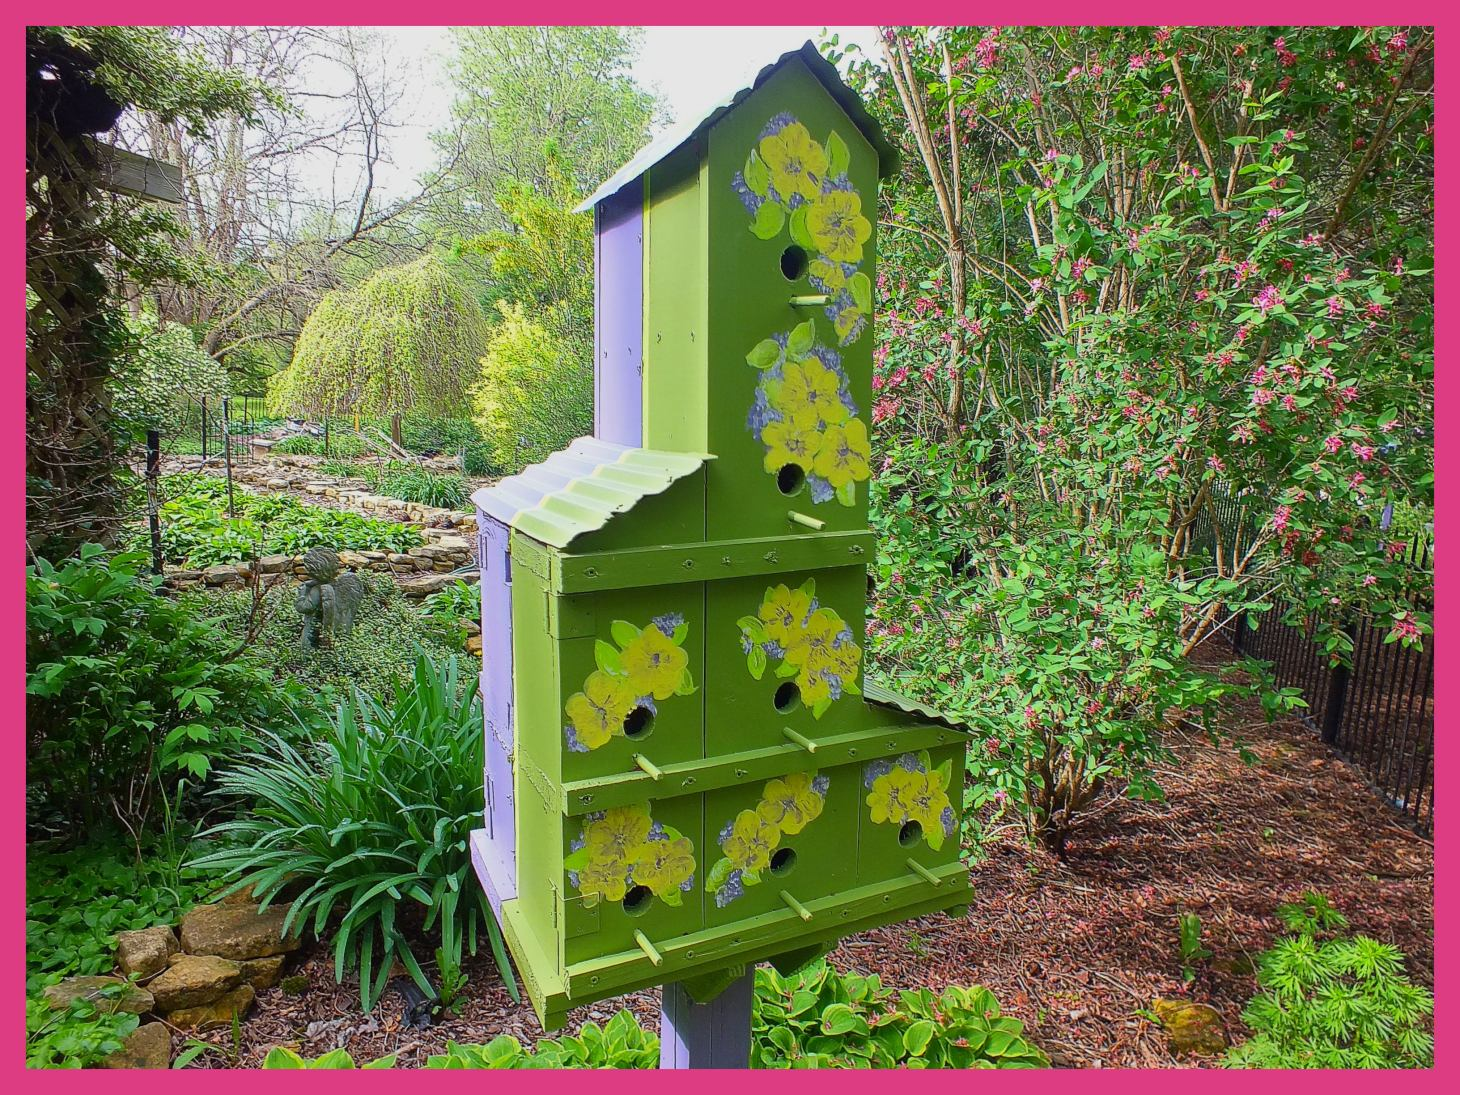 Birdhouse (1... at sister-in-law Mary's place).  Photo by Thomas Peace c. 2015